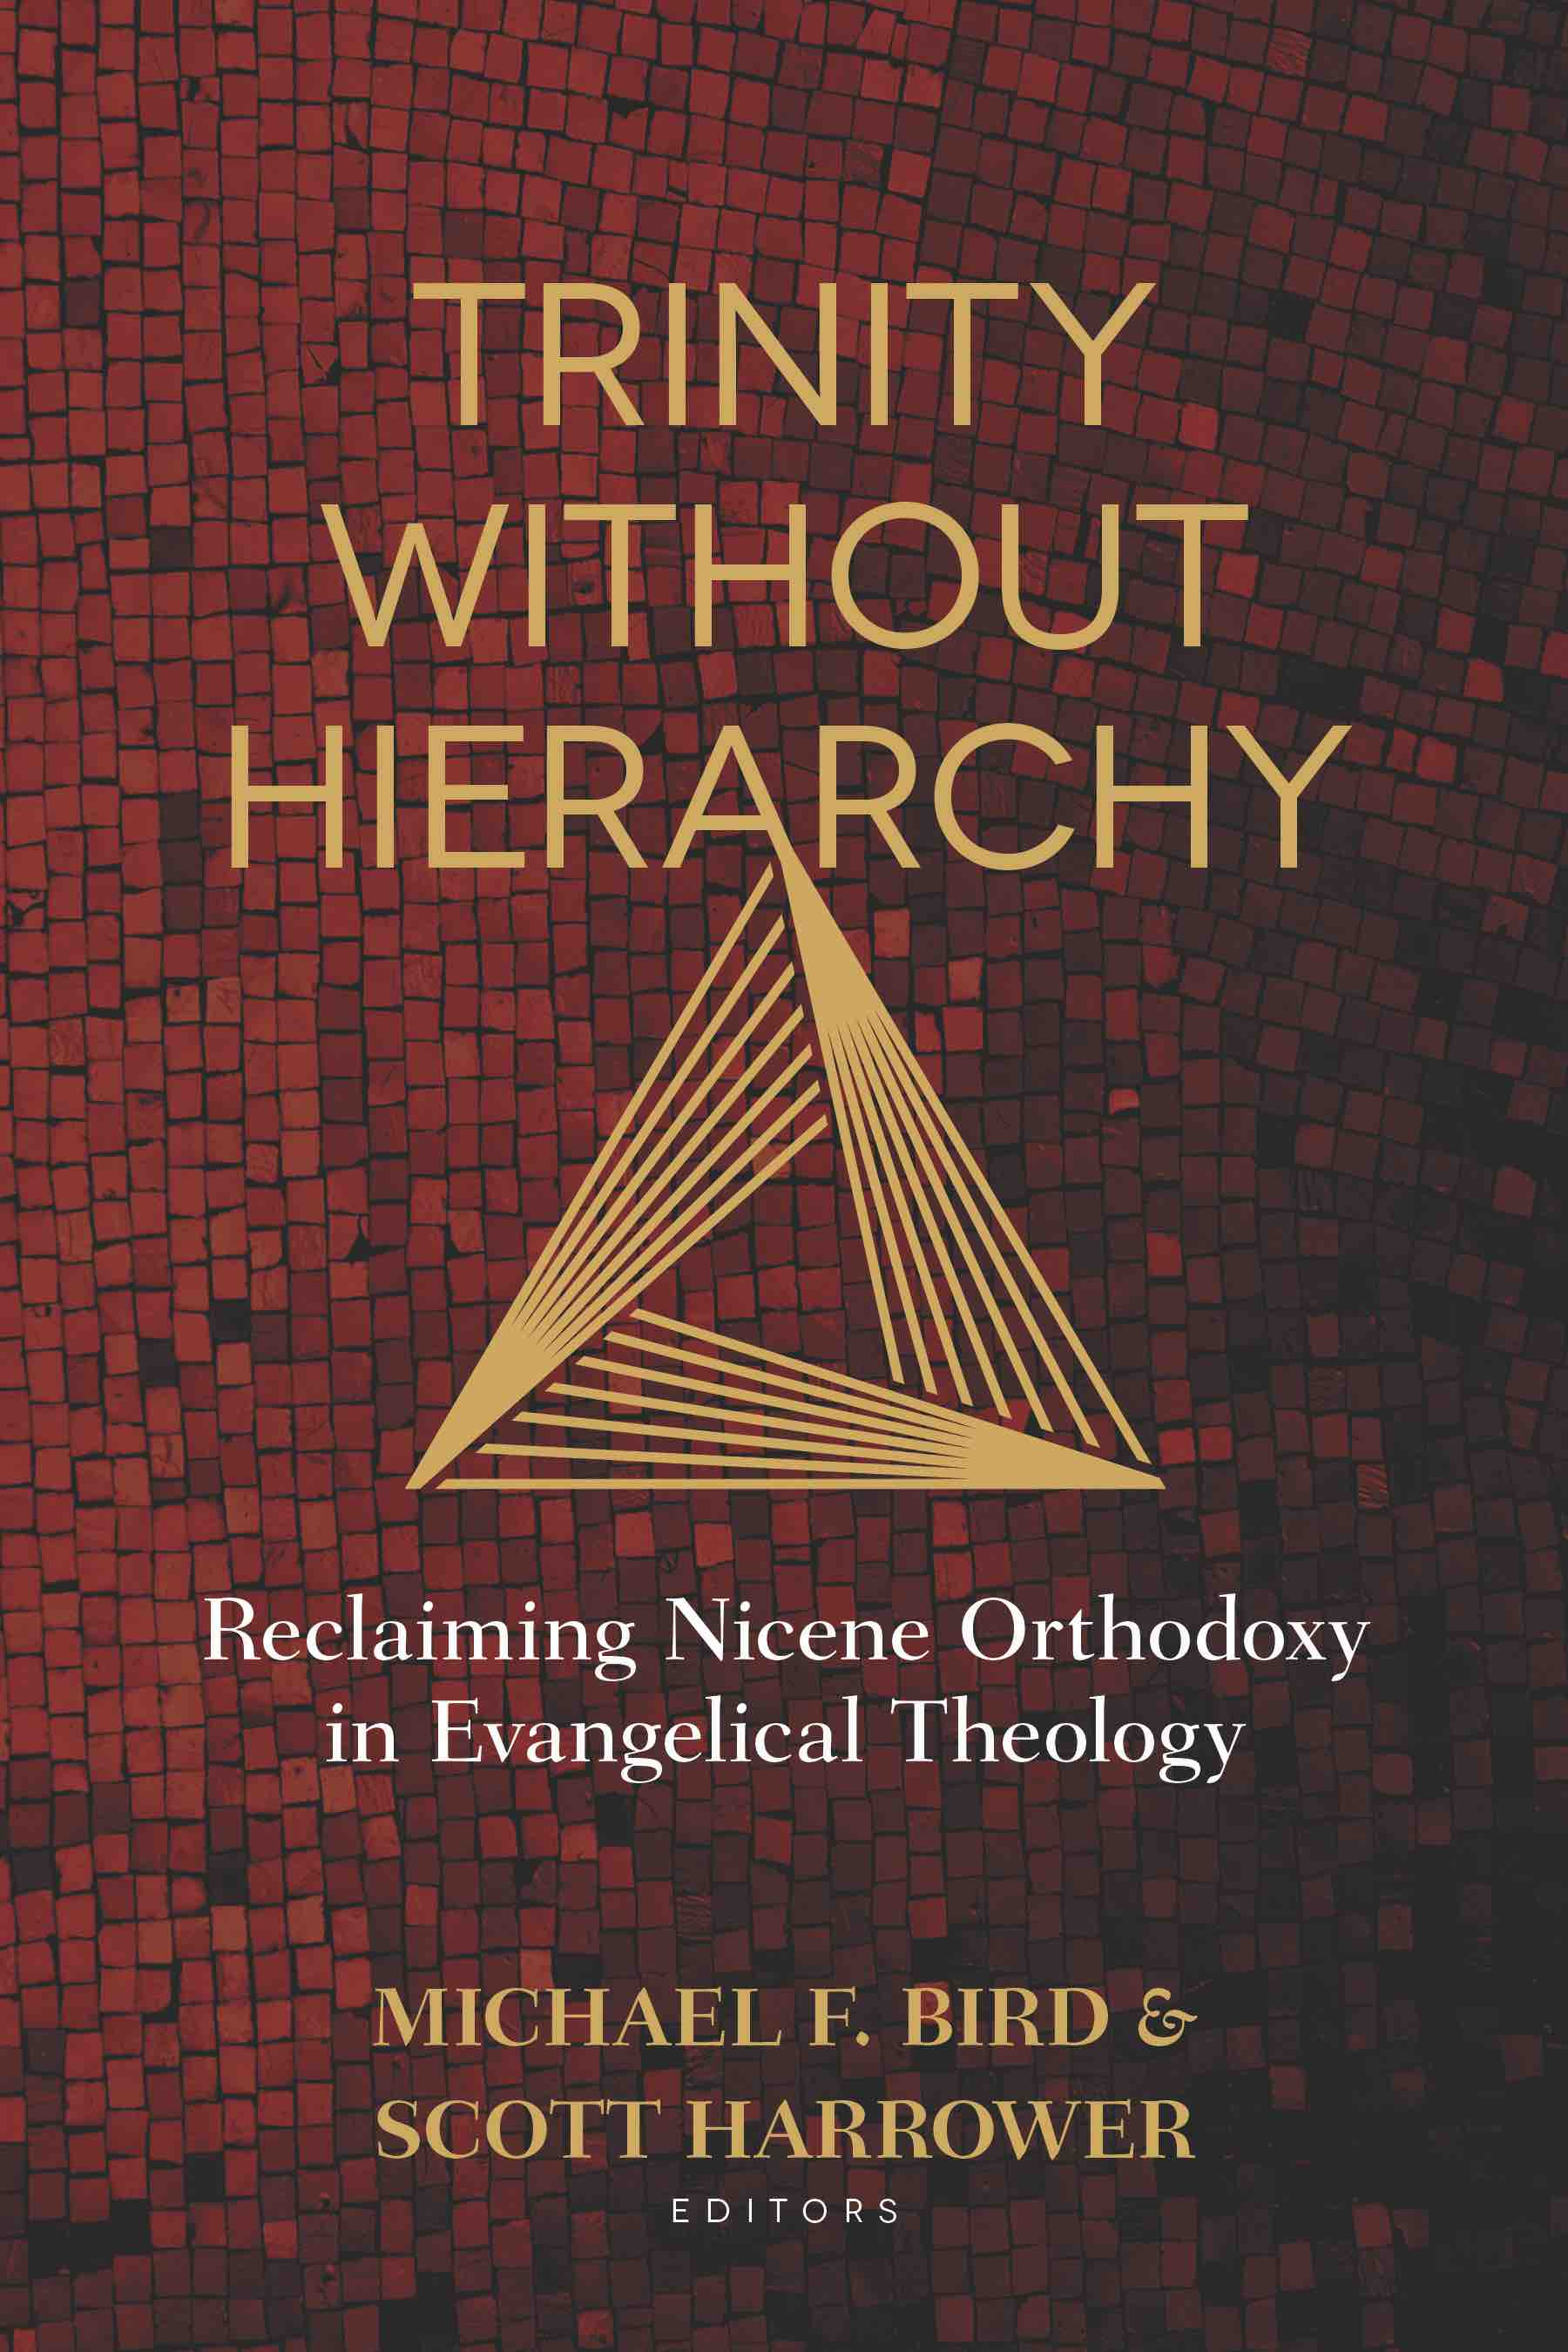 Trinity without Hierarchy